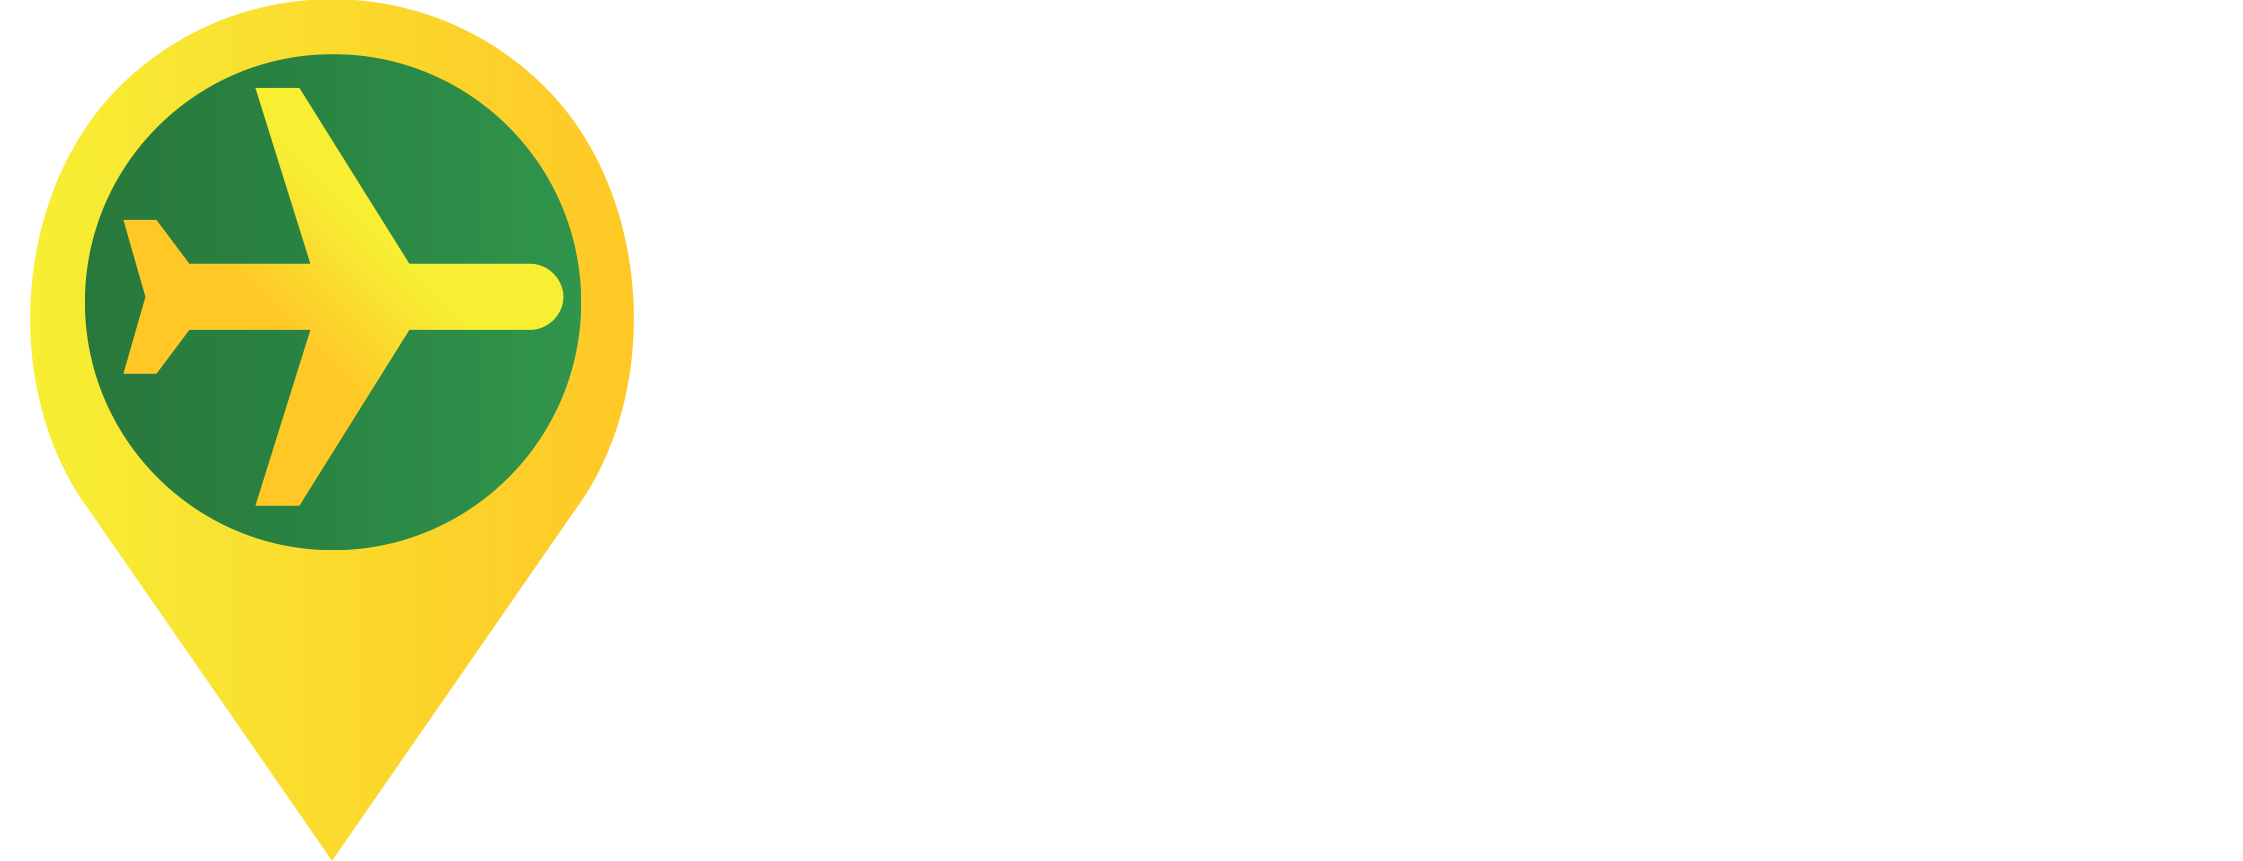 Welcome to the Raylane Travel Clinic